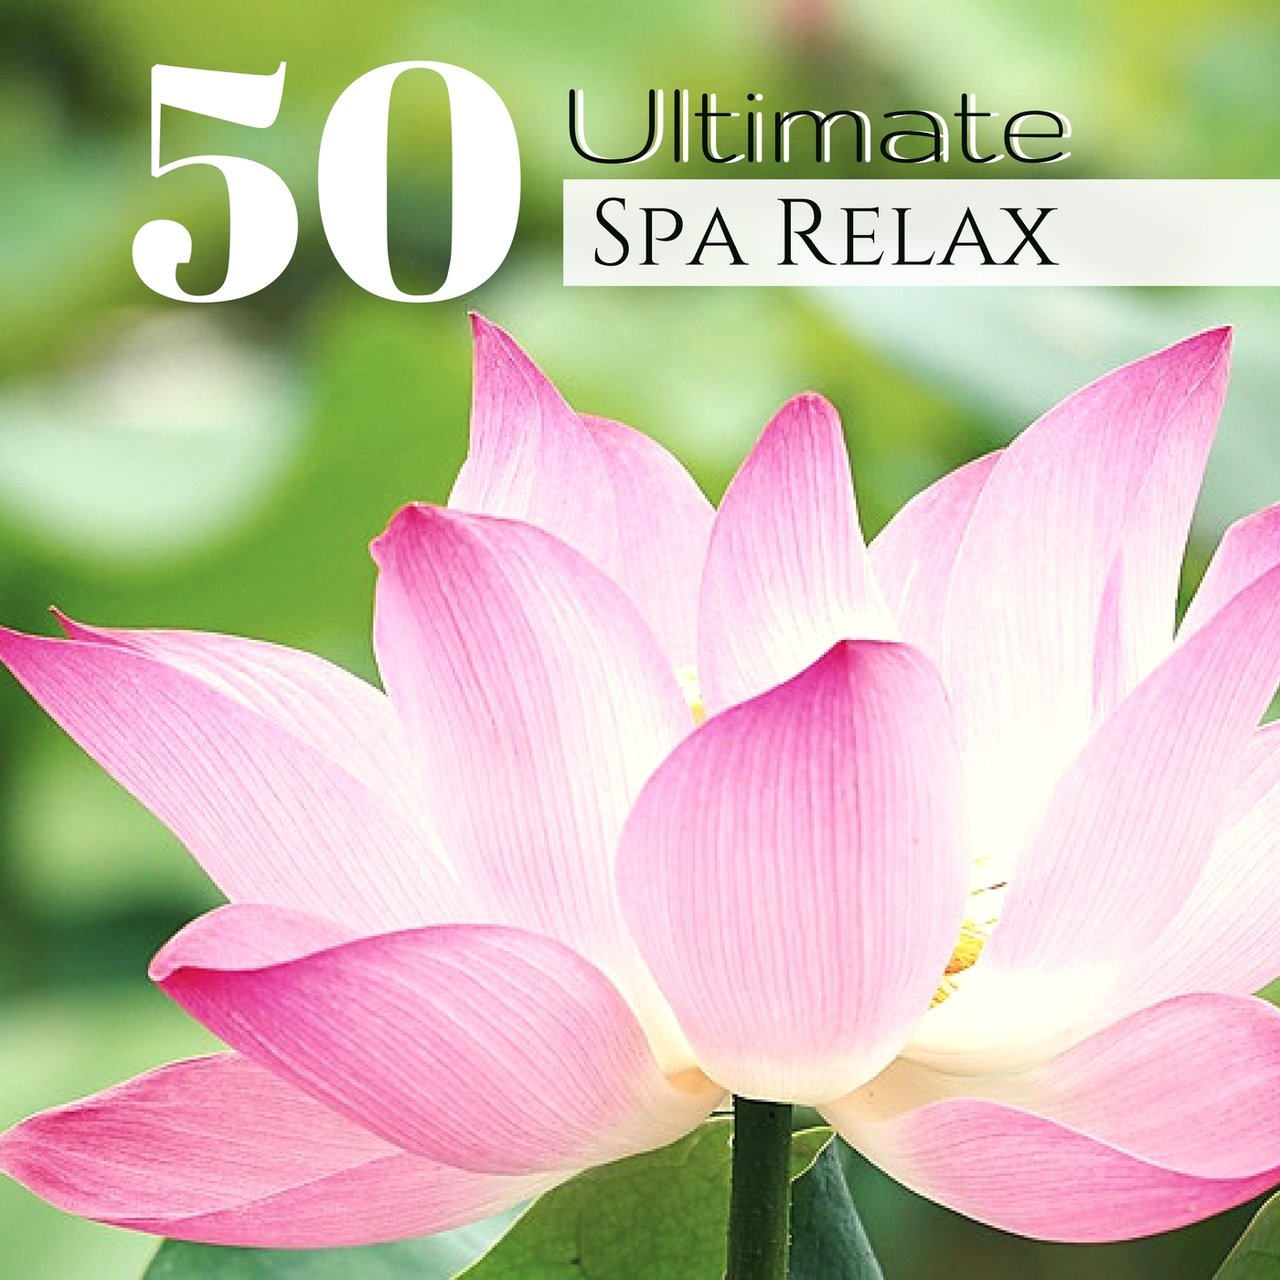 Tidal listen to best spa music collection 50 dream spa sounds for 50 ultimate spa relax zen lotus garden meditation music collection izmirmasajfo